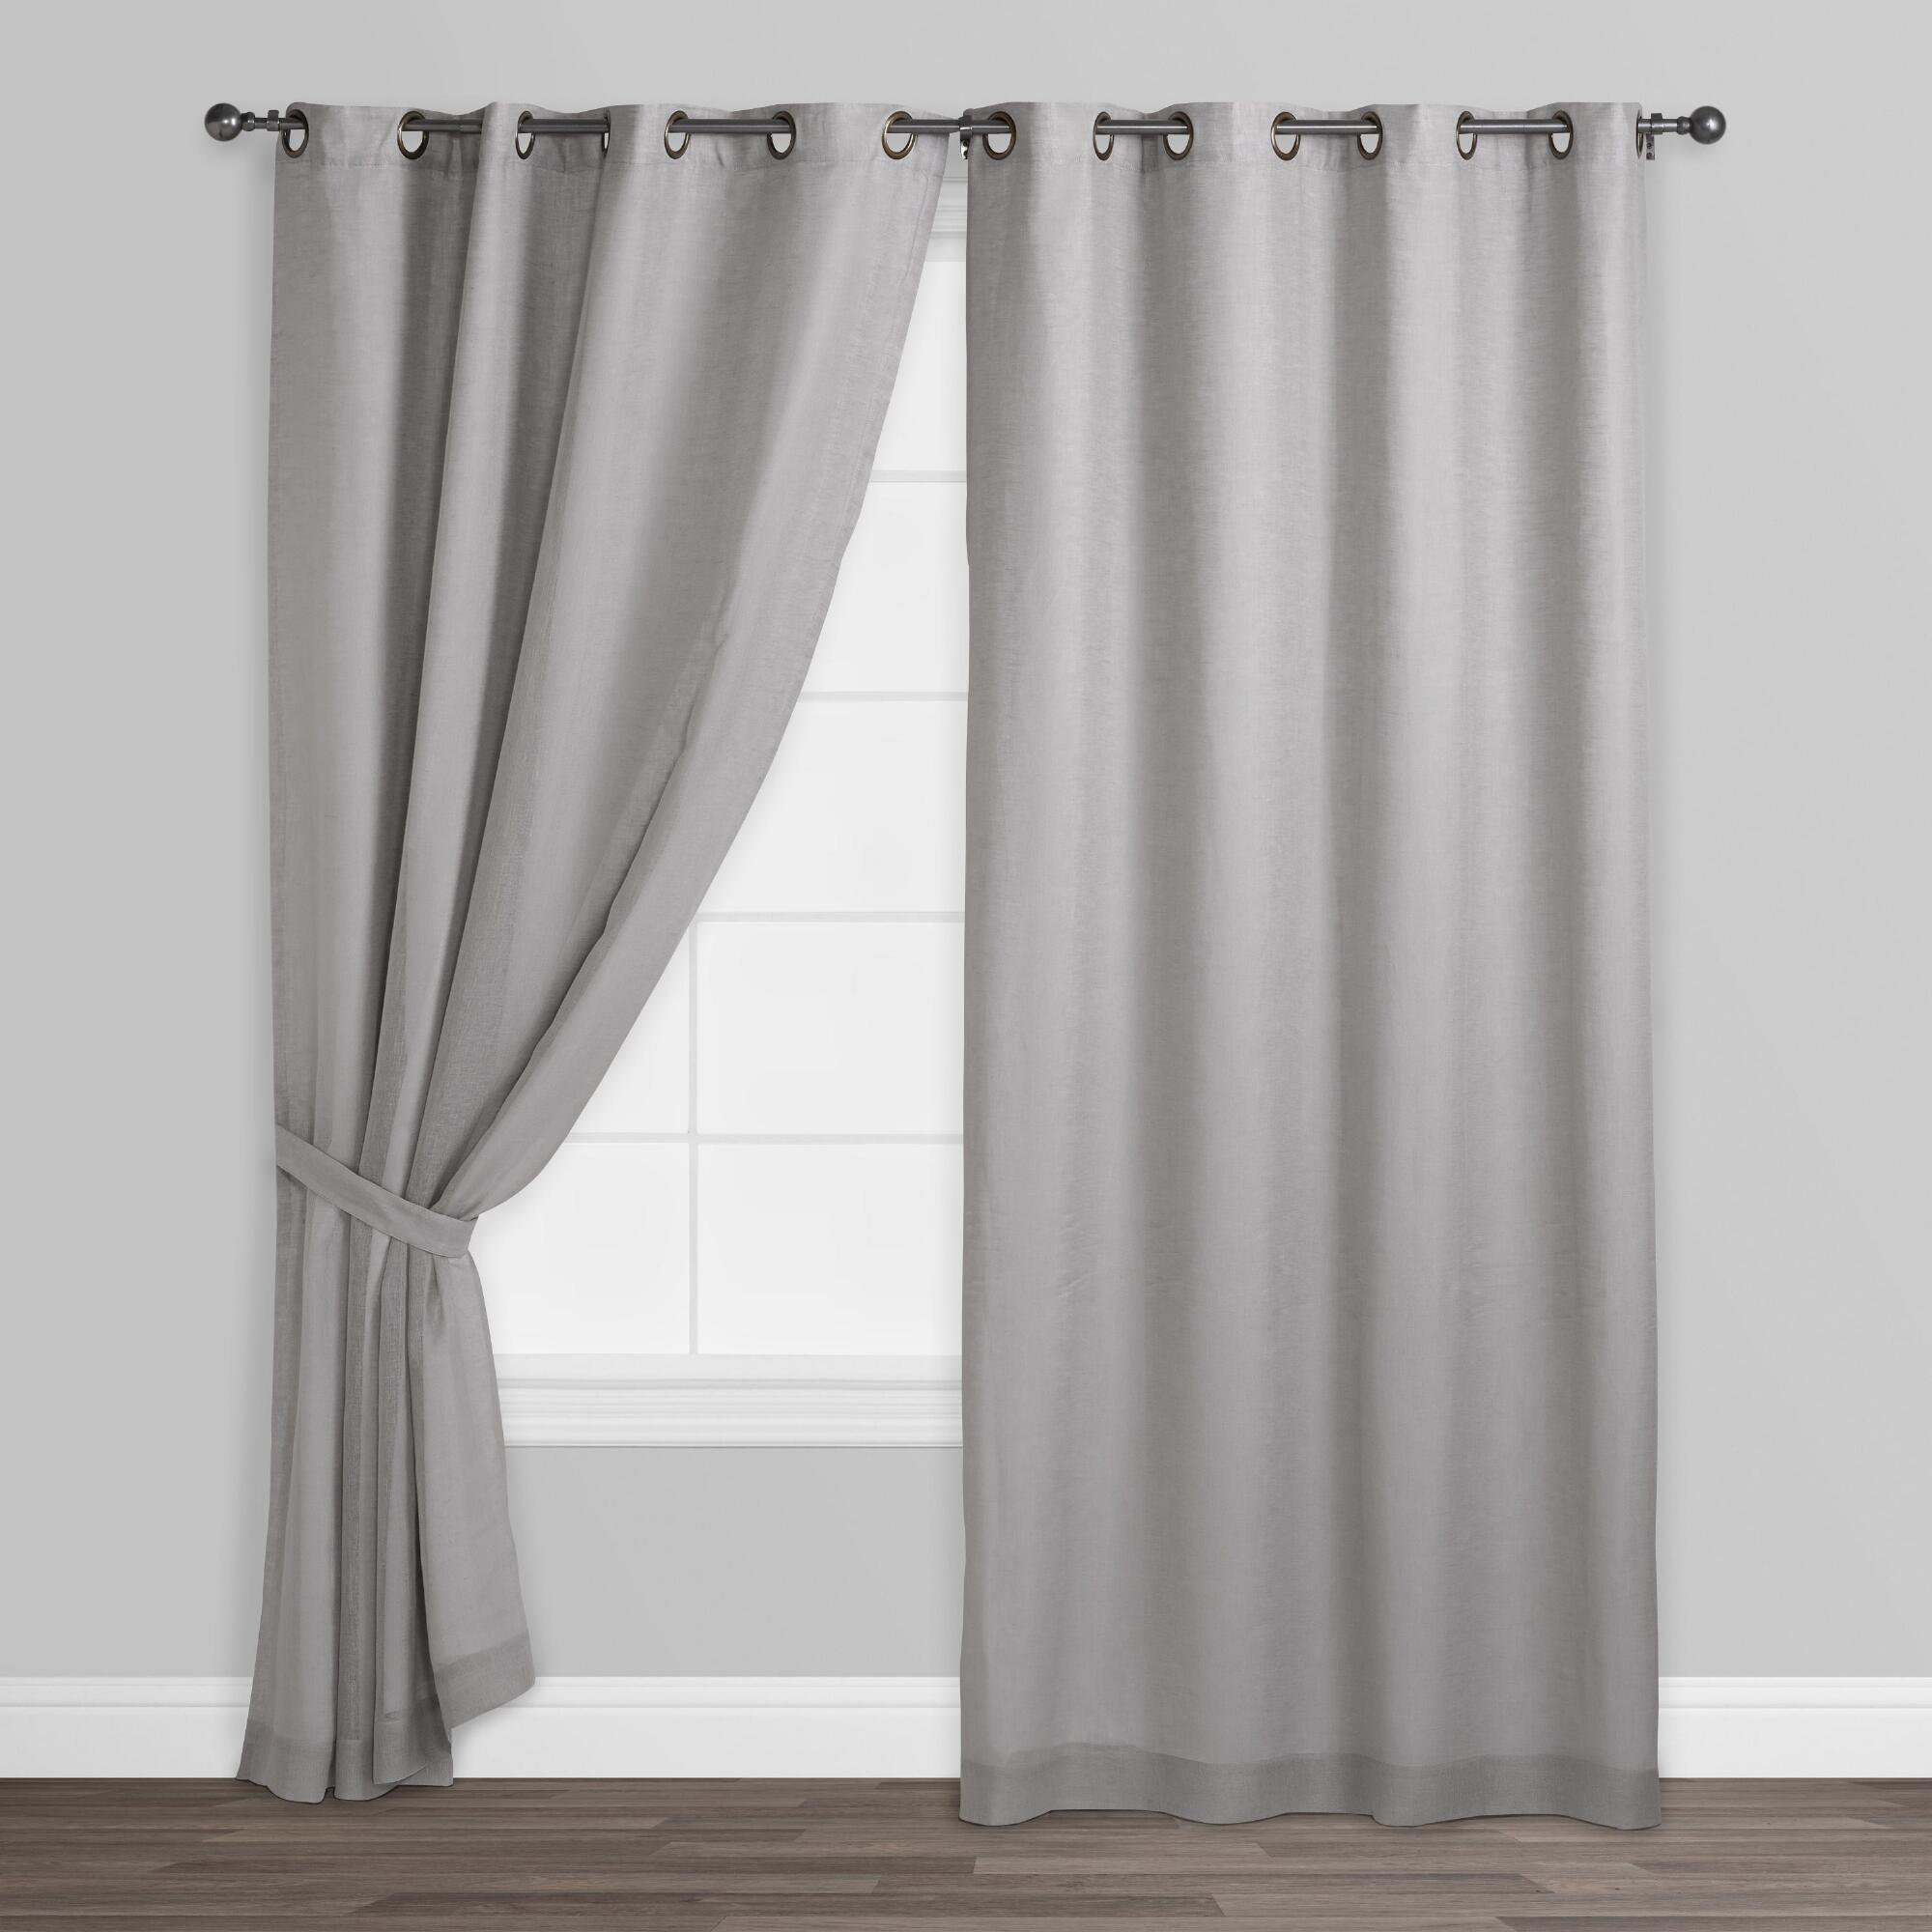 grommet grey panels solid gray linen top curtains size blackout dark piece sheer curtain pin inches polyester